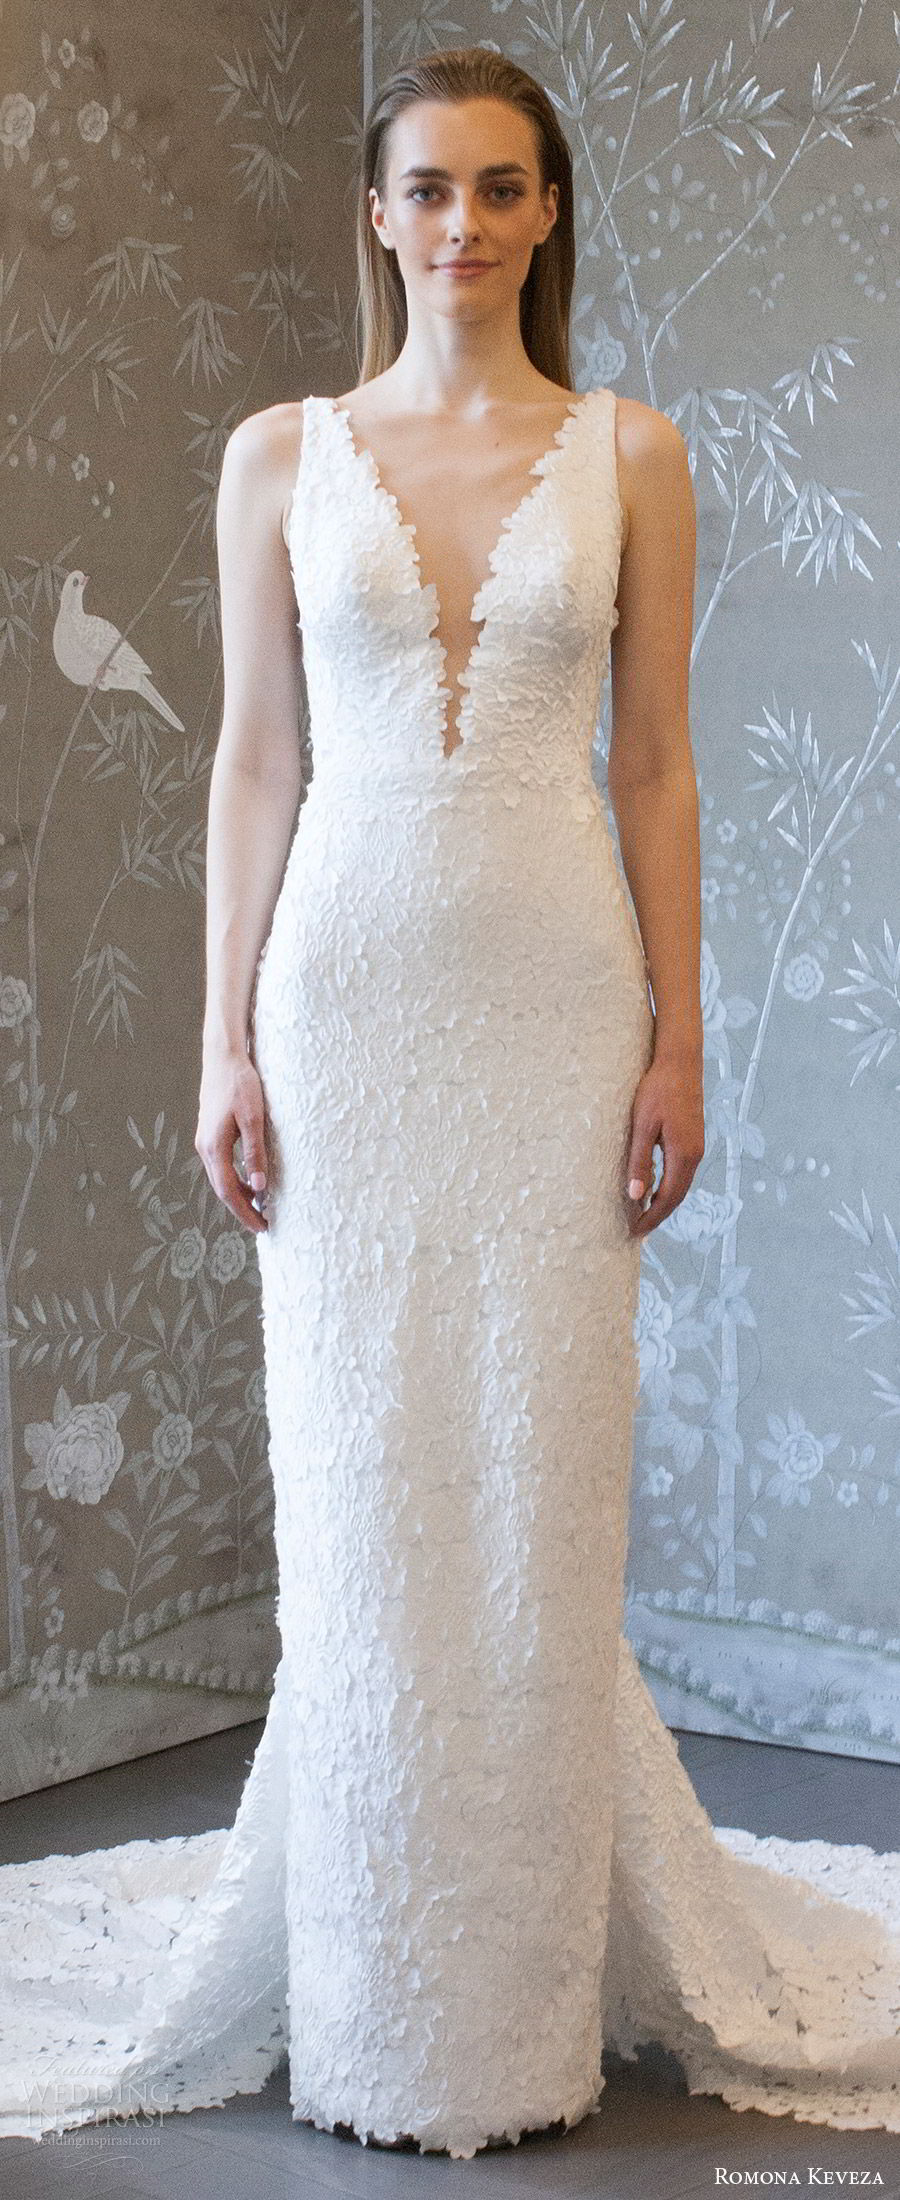 romona keveza spring 2018 bridal sleeveless deep v neck lace sheath wedding dress (rk8406) zv v back elegant chapel train